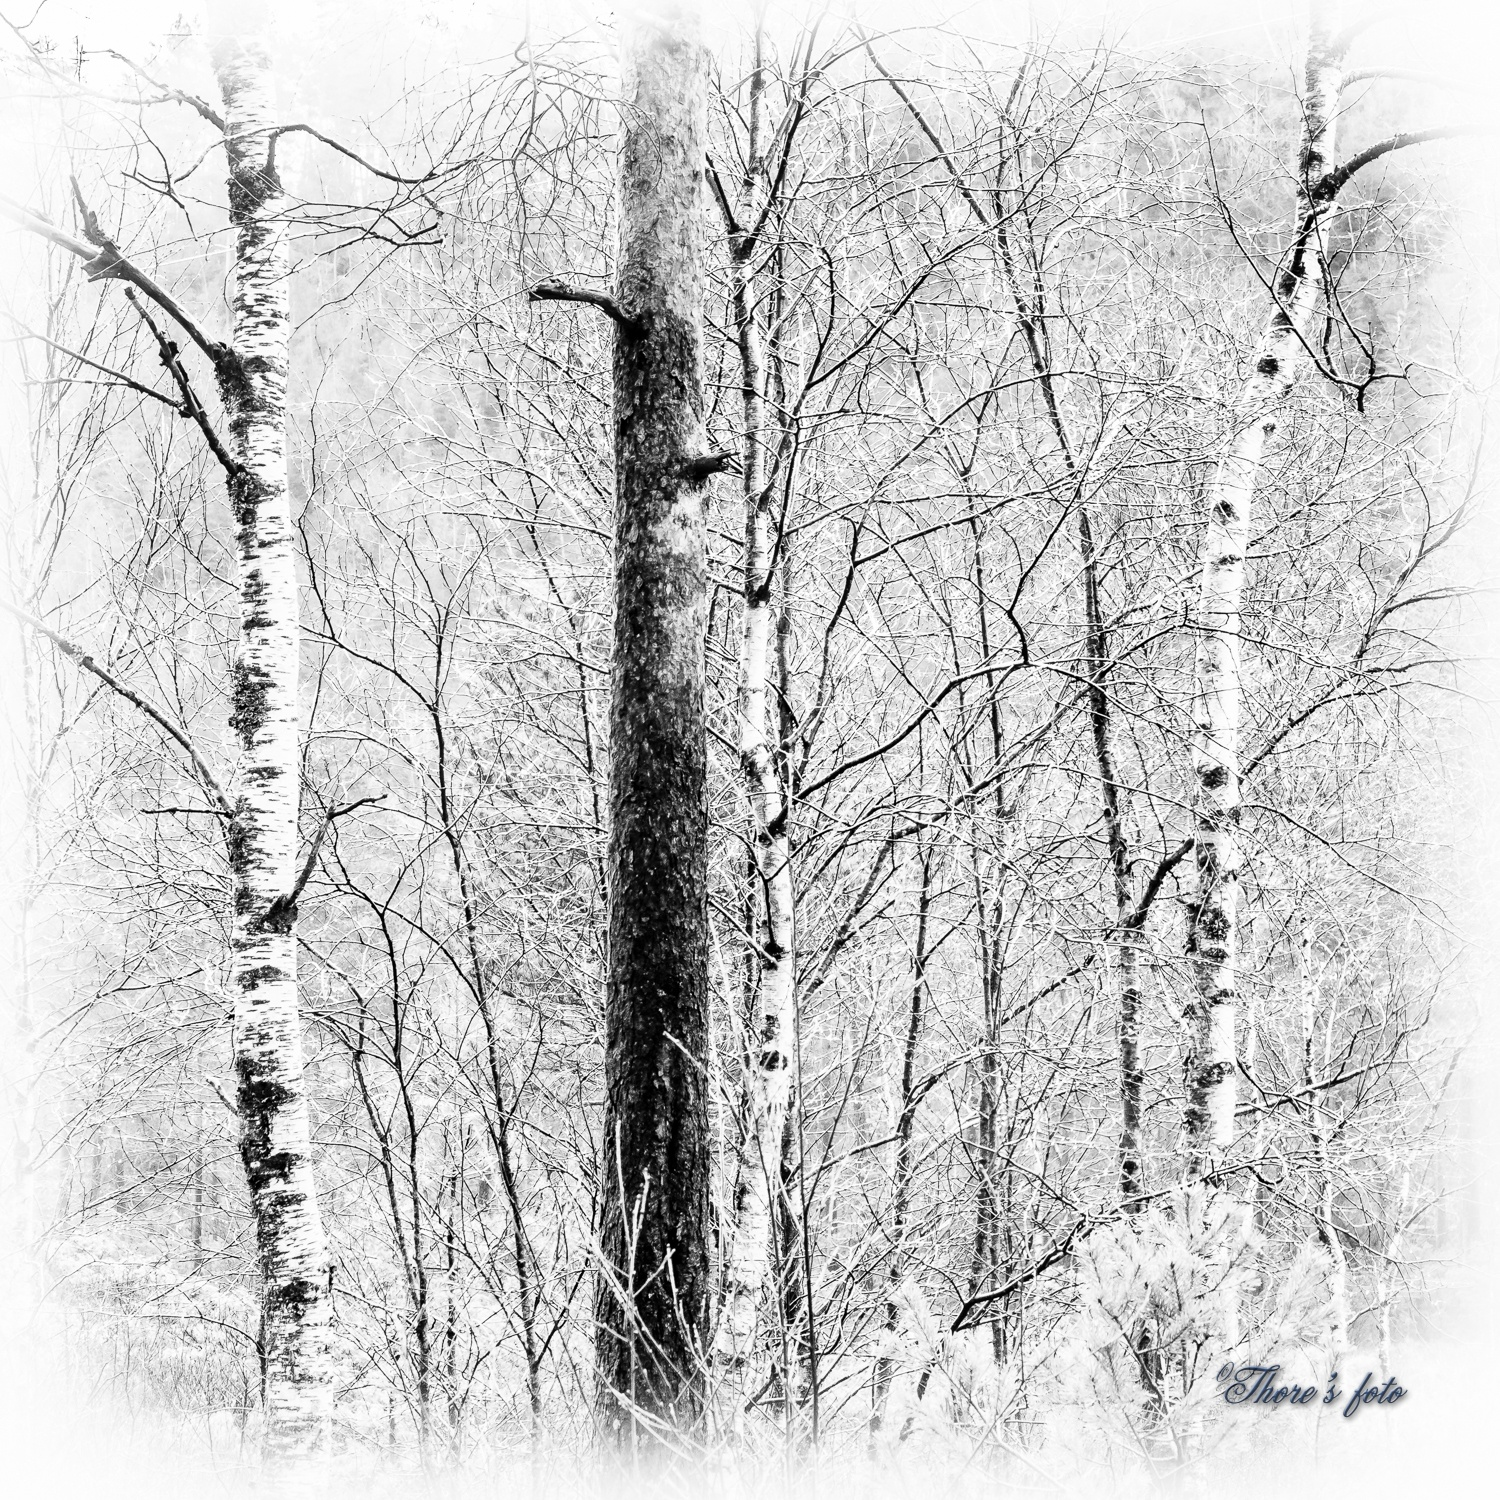 birchs and a pine trunk by Thore's photo